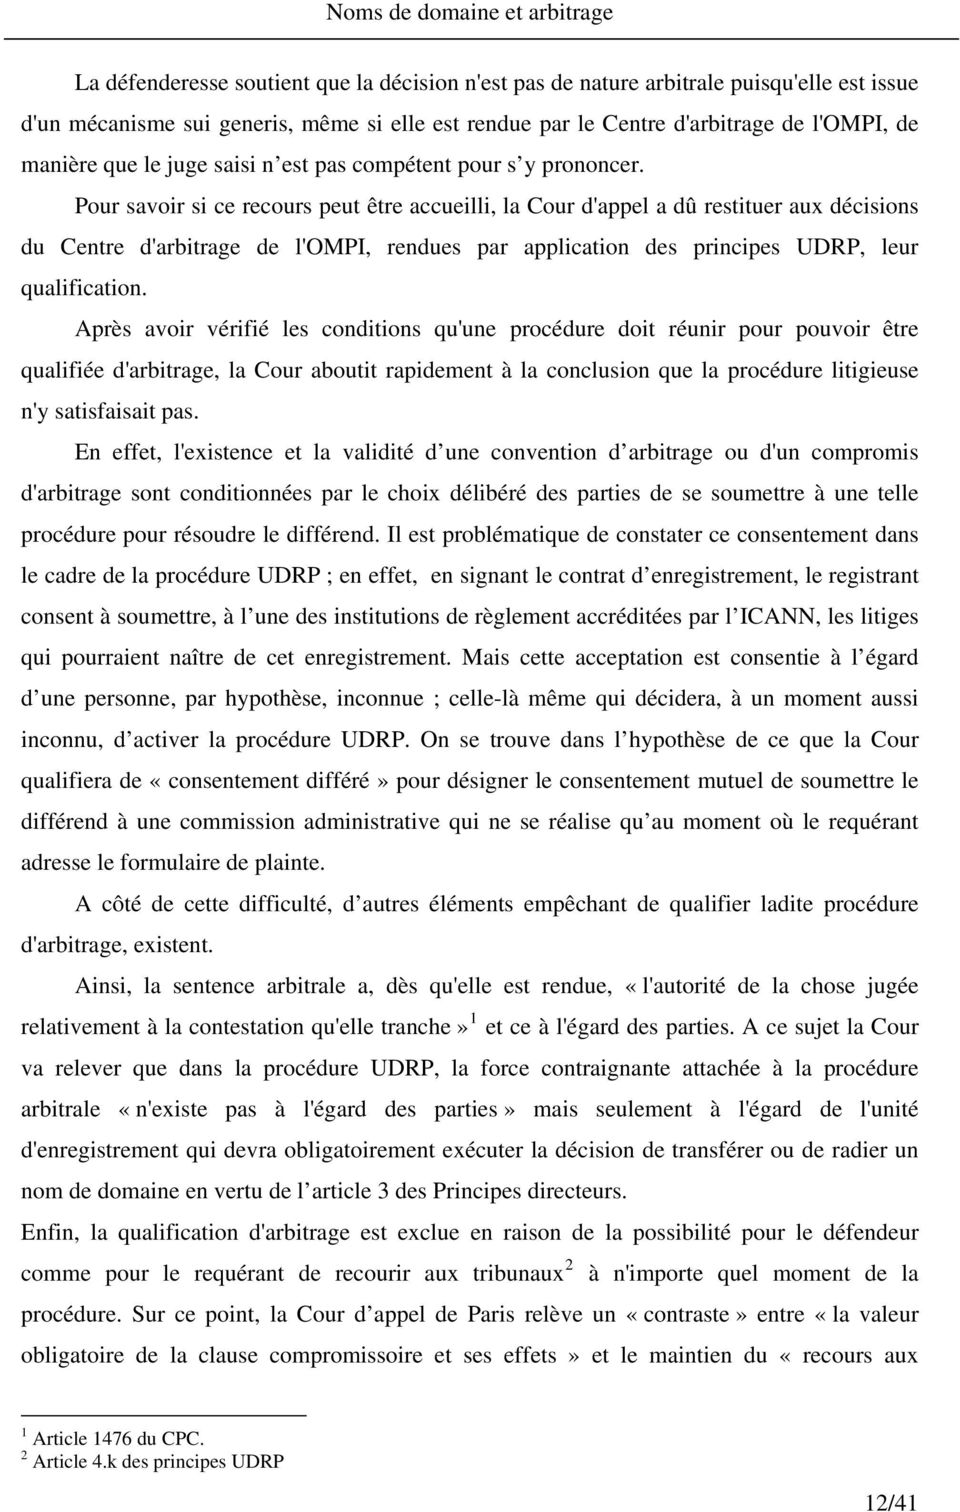 Pour savoir si ce recours peut être accueilli, la Cour d'appel a dû restituer aux décisions du Centre d'arbitrage de l'ompi, rendues par application des principes UDRP, leur qualification.